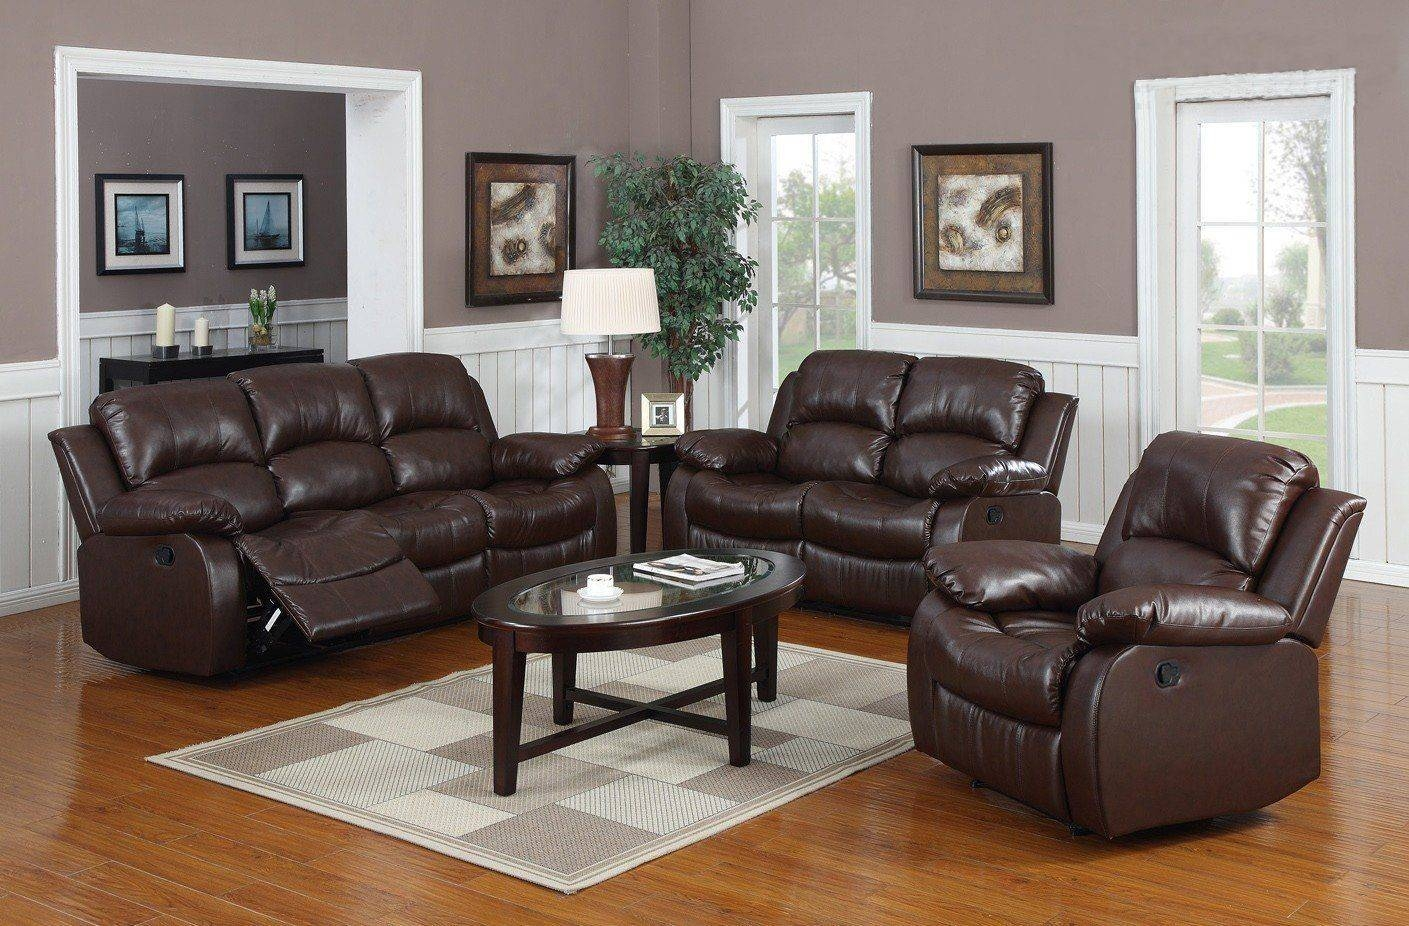 Value City Furniture Recliner Sofas Dark Brown Leathered Sofa Set regarding Oval Sofas (Image 29 of 30)